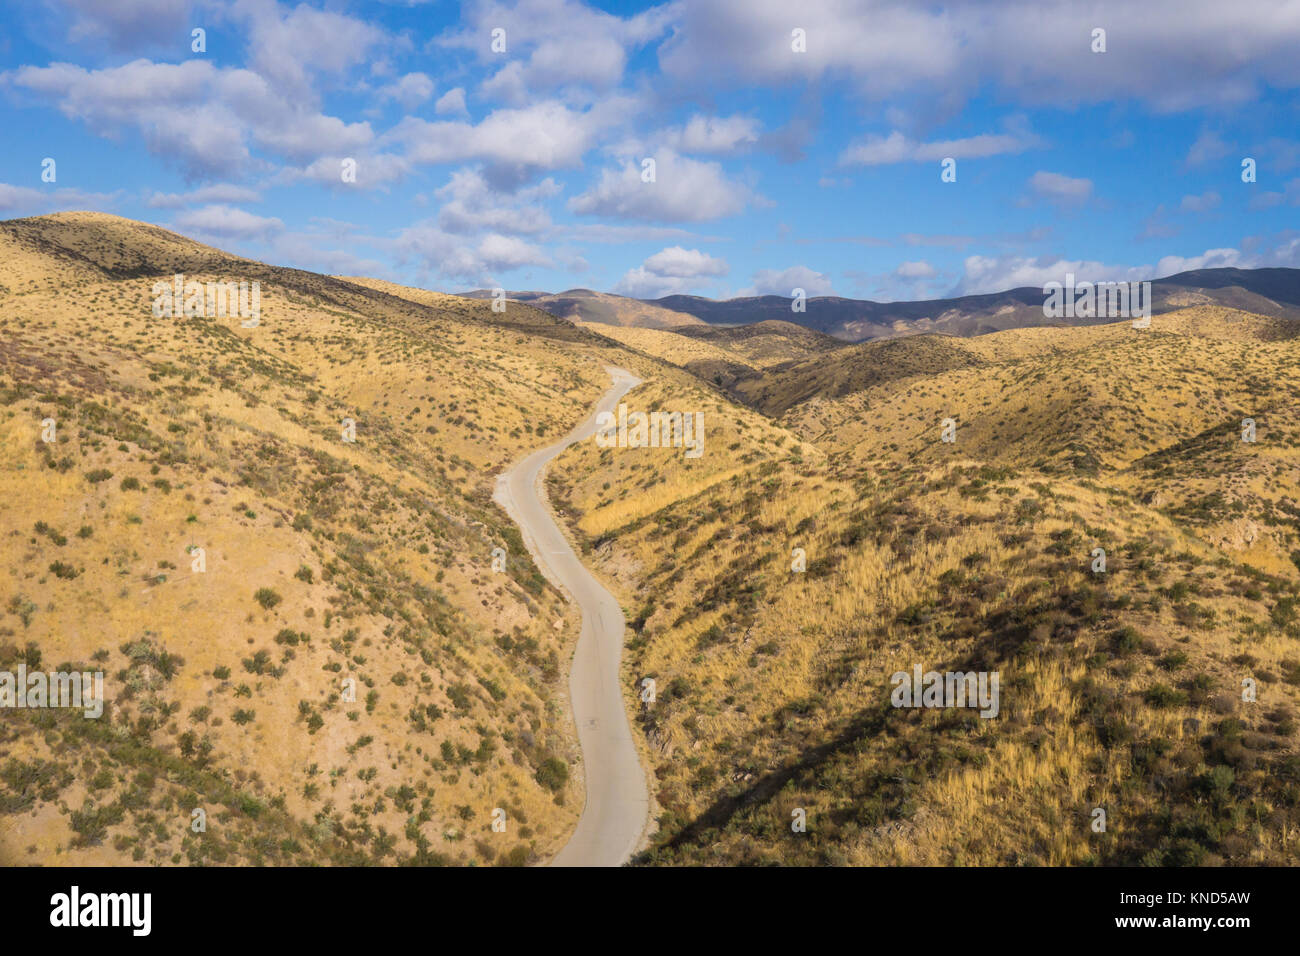 Drone photograph of asphalt road leading through the dry hills of southern California canyons. - Stock Image